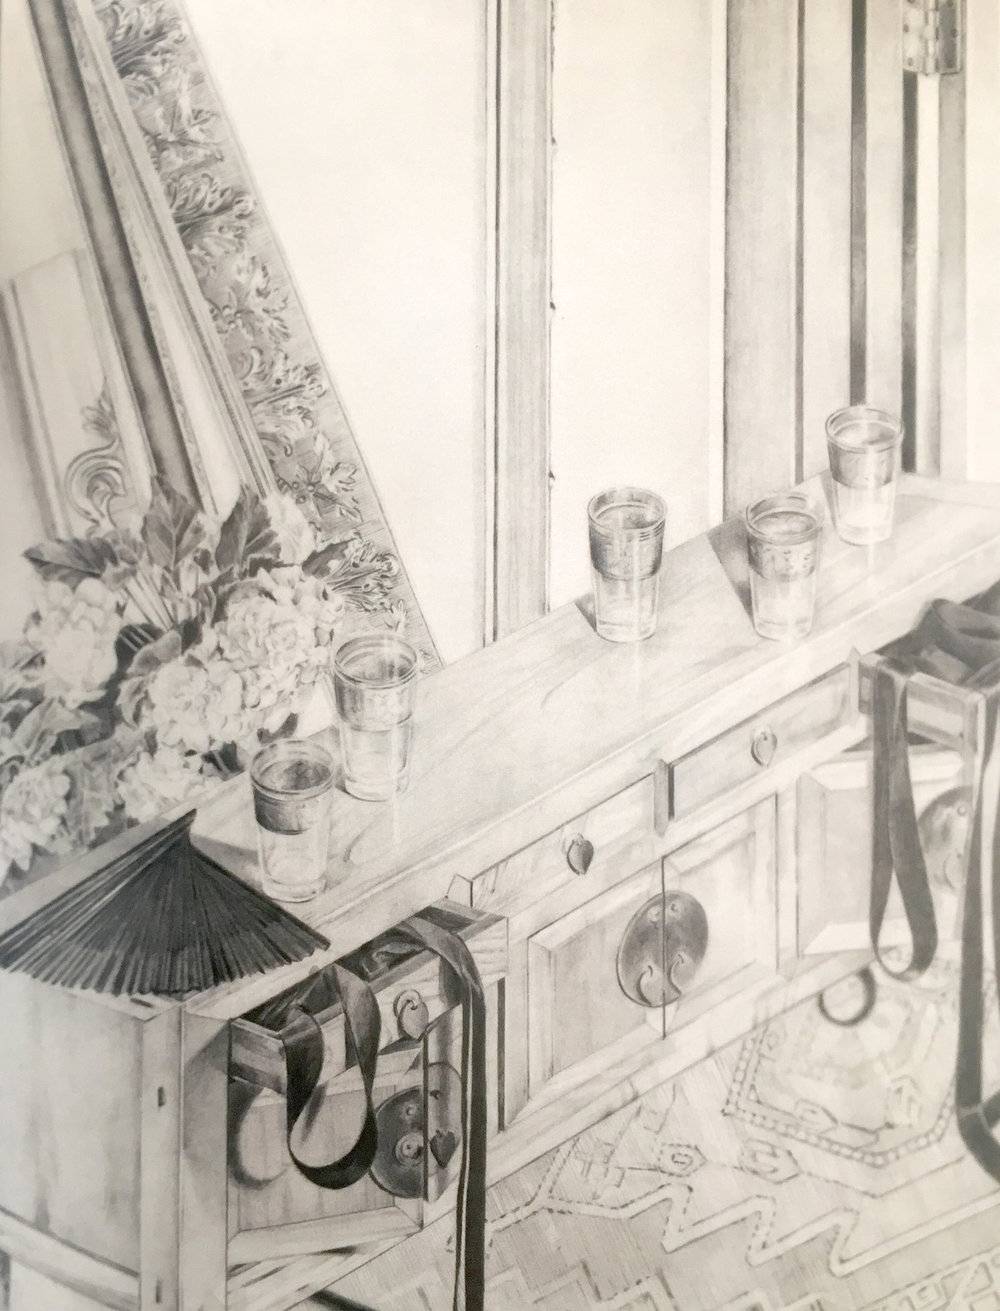 "Carole Doyle Peel,  Fan with Ribbons and Water Glasses , 2000, graphite, 40x32"". Collection of the Estate of Carole Doyle Peel."